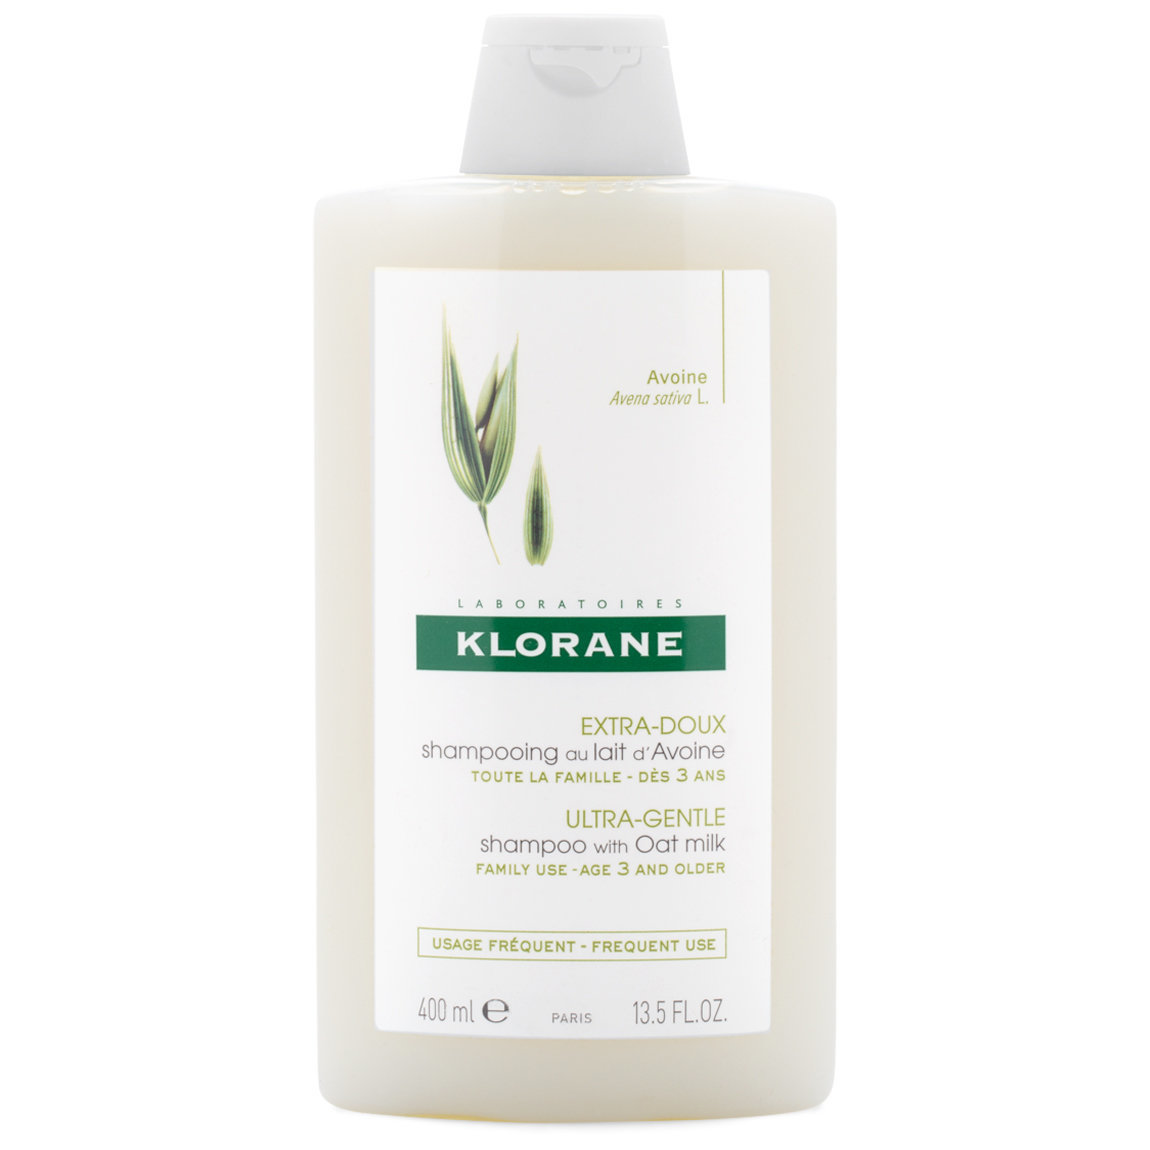 Klorane Shampoo with Oat Milk 13.5 oz product smear.